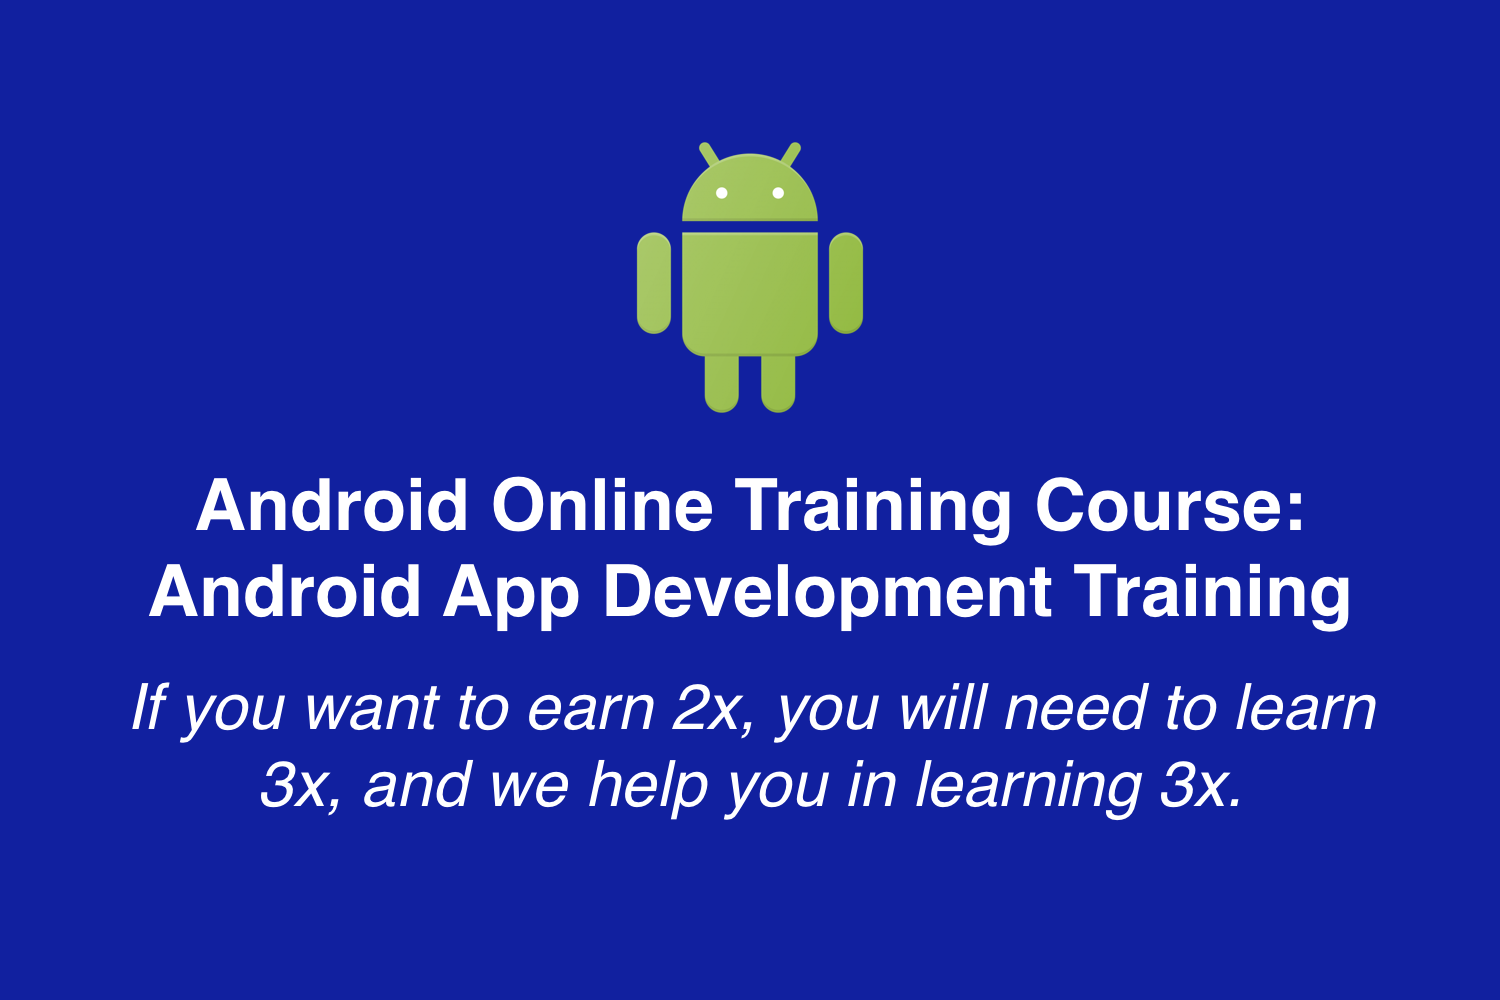 Android Online Training Course: Android App Development Training